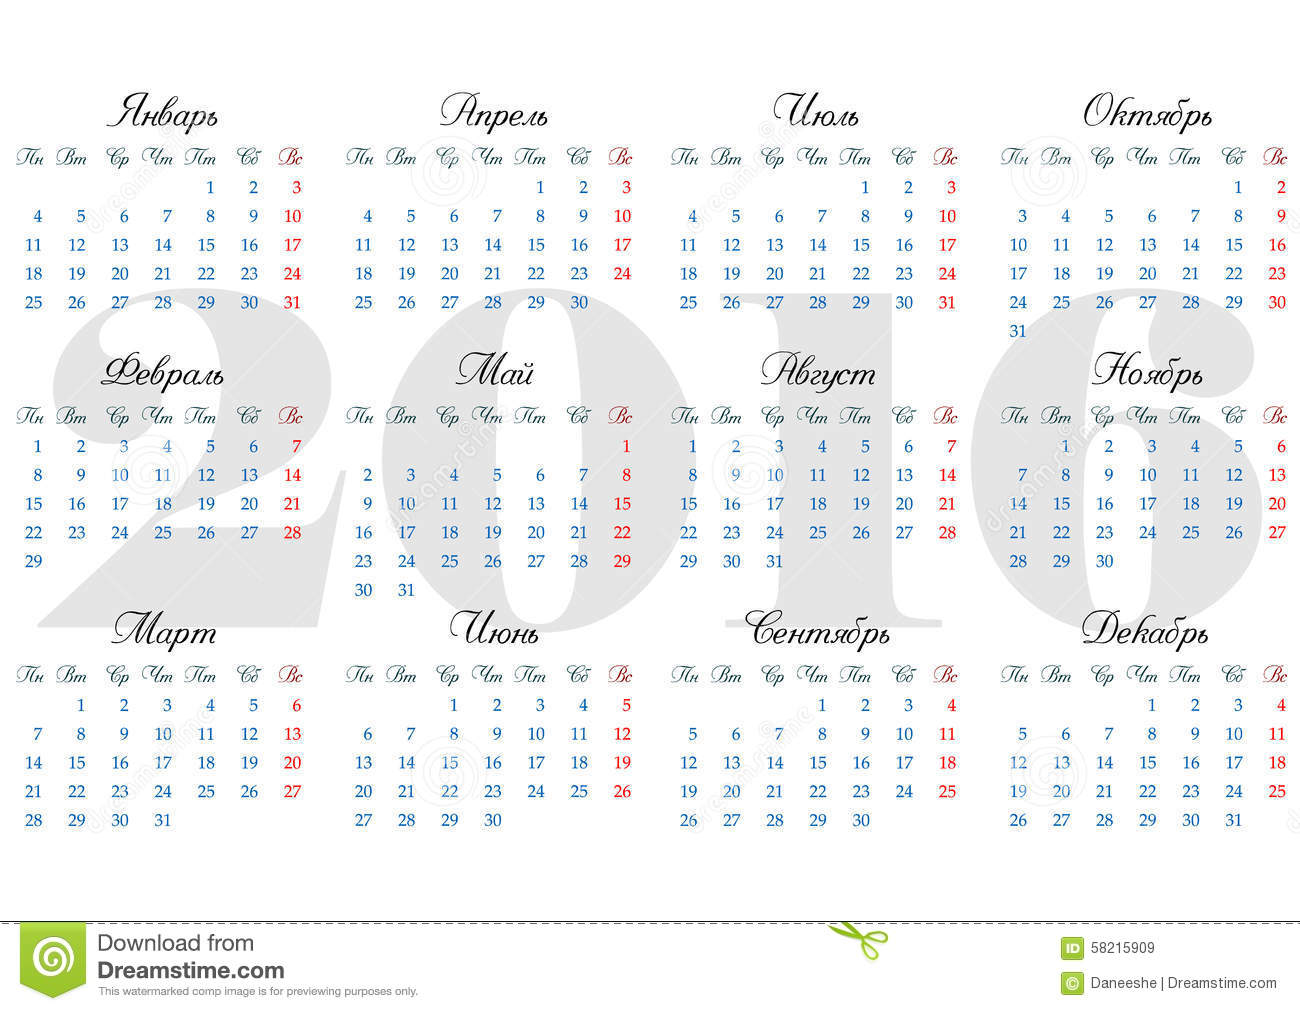 Production Calendar Grid For 2016 With Noted Russian Holidays And ...